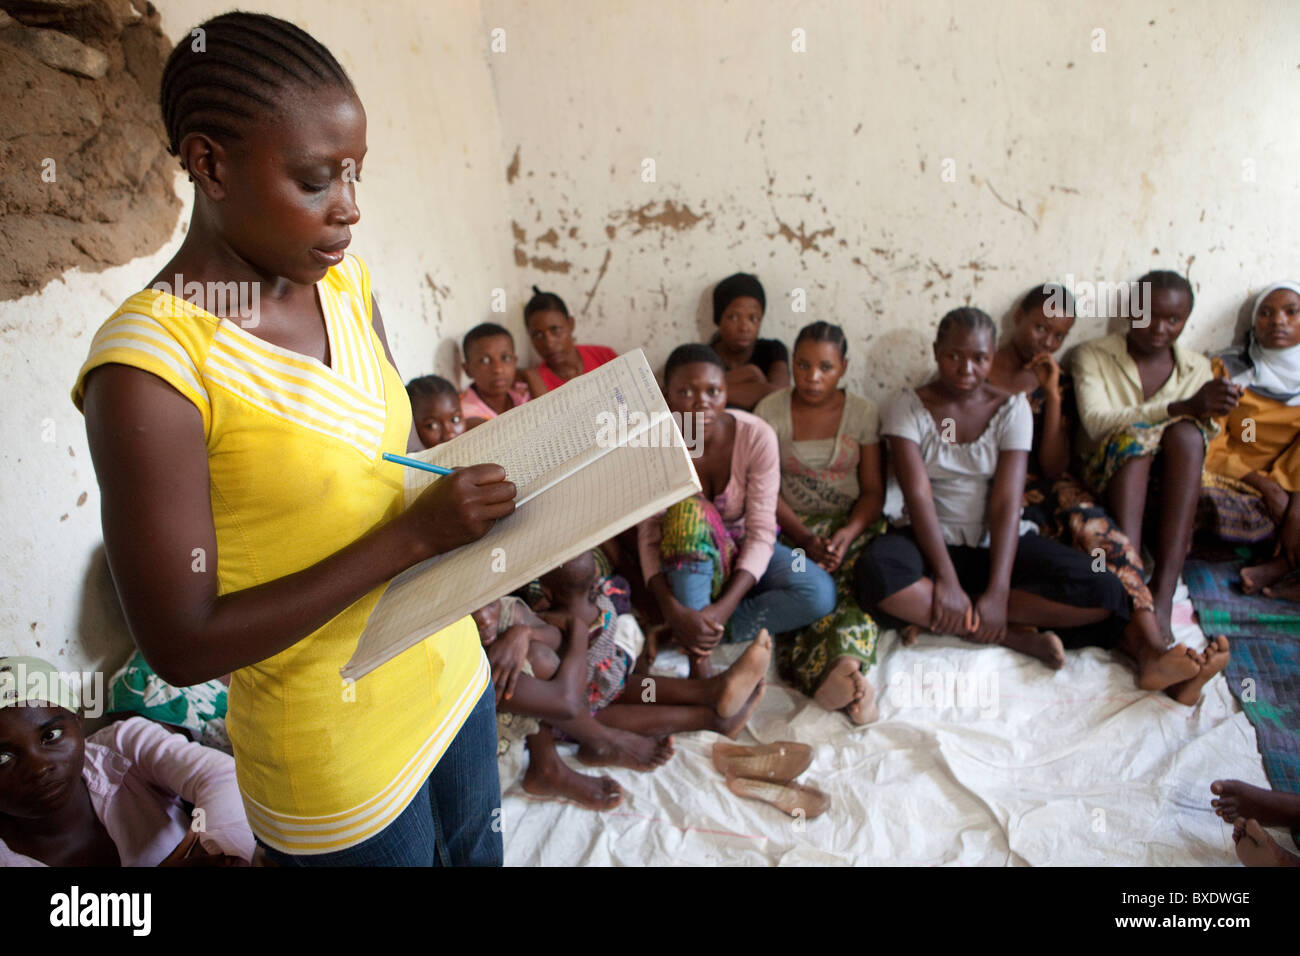 Girls attend an after-school adolescent development program in Dodoma, Tanzania, East Africa. - Stock Image